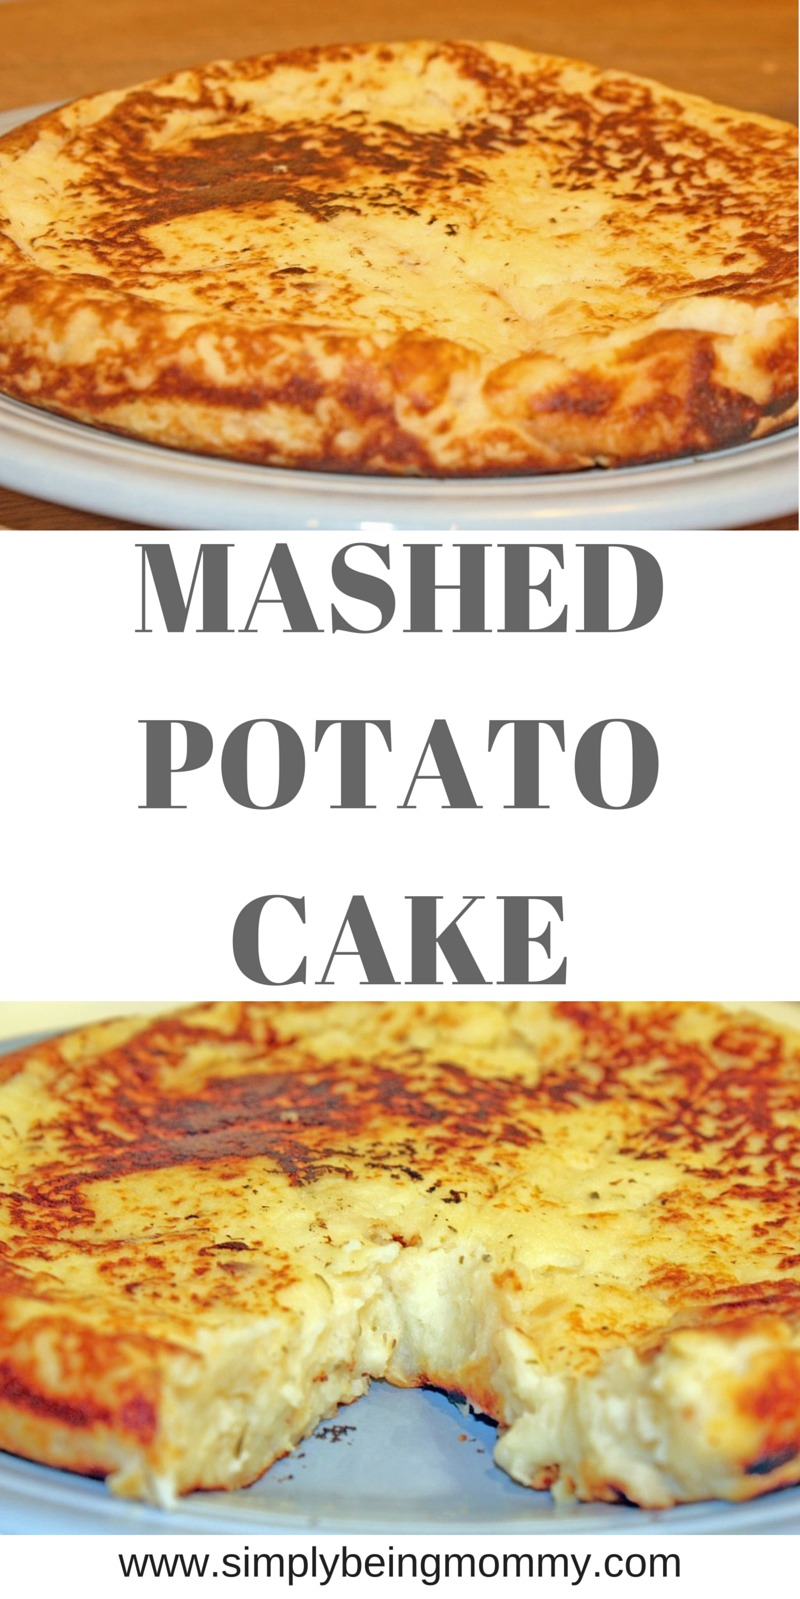 Try your mashed potatoes a different way. Try this Mashed Potato Cake recipe!